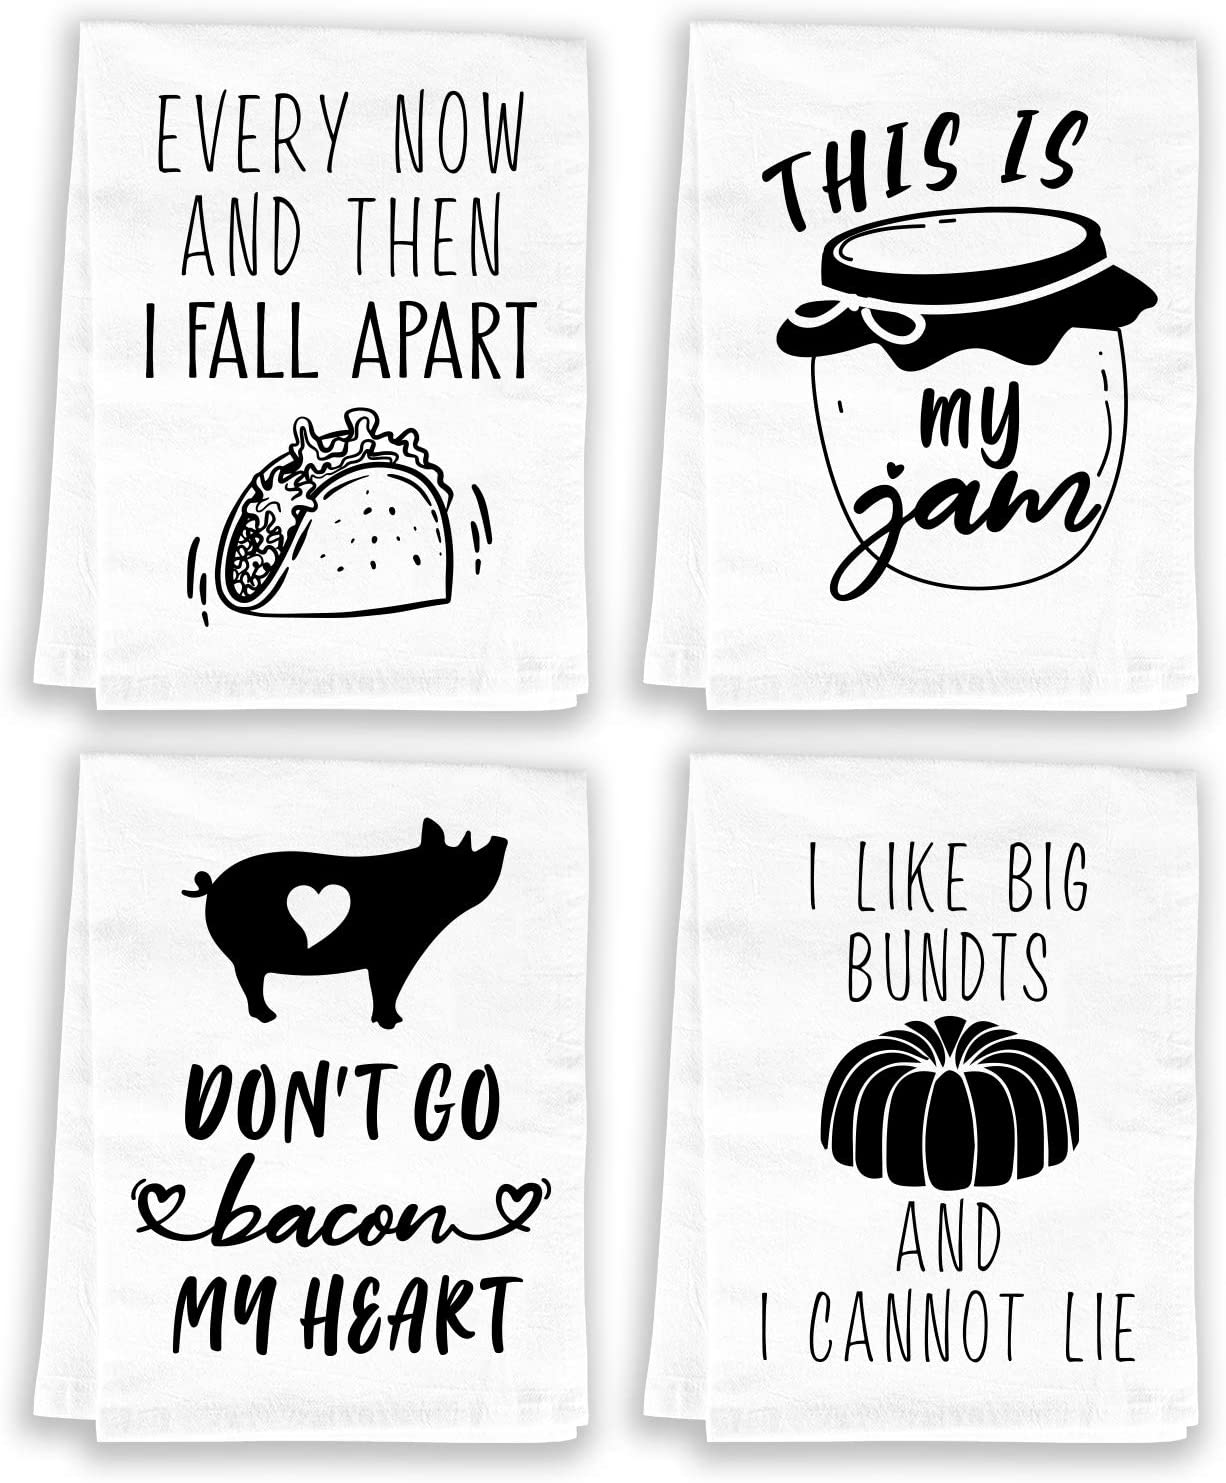 Amazon Com Miracu Funny Kitchen Towels And Dishcloths Sets Of 4 Birthday Housewarming Gifts New Home Cotton Dish Towels For Drying Dishes Cute Decorative Hand Towels Tea Towels Flour Sack